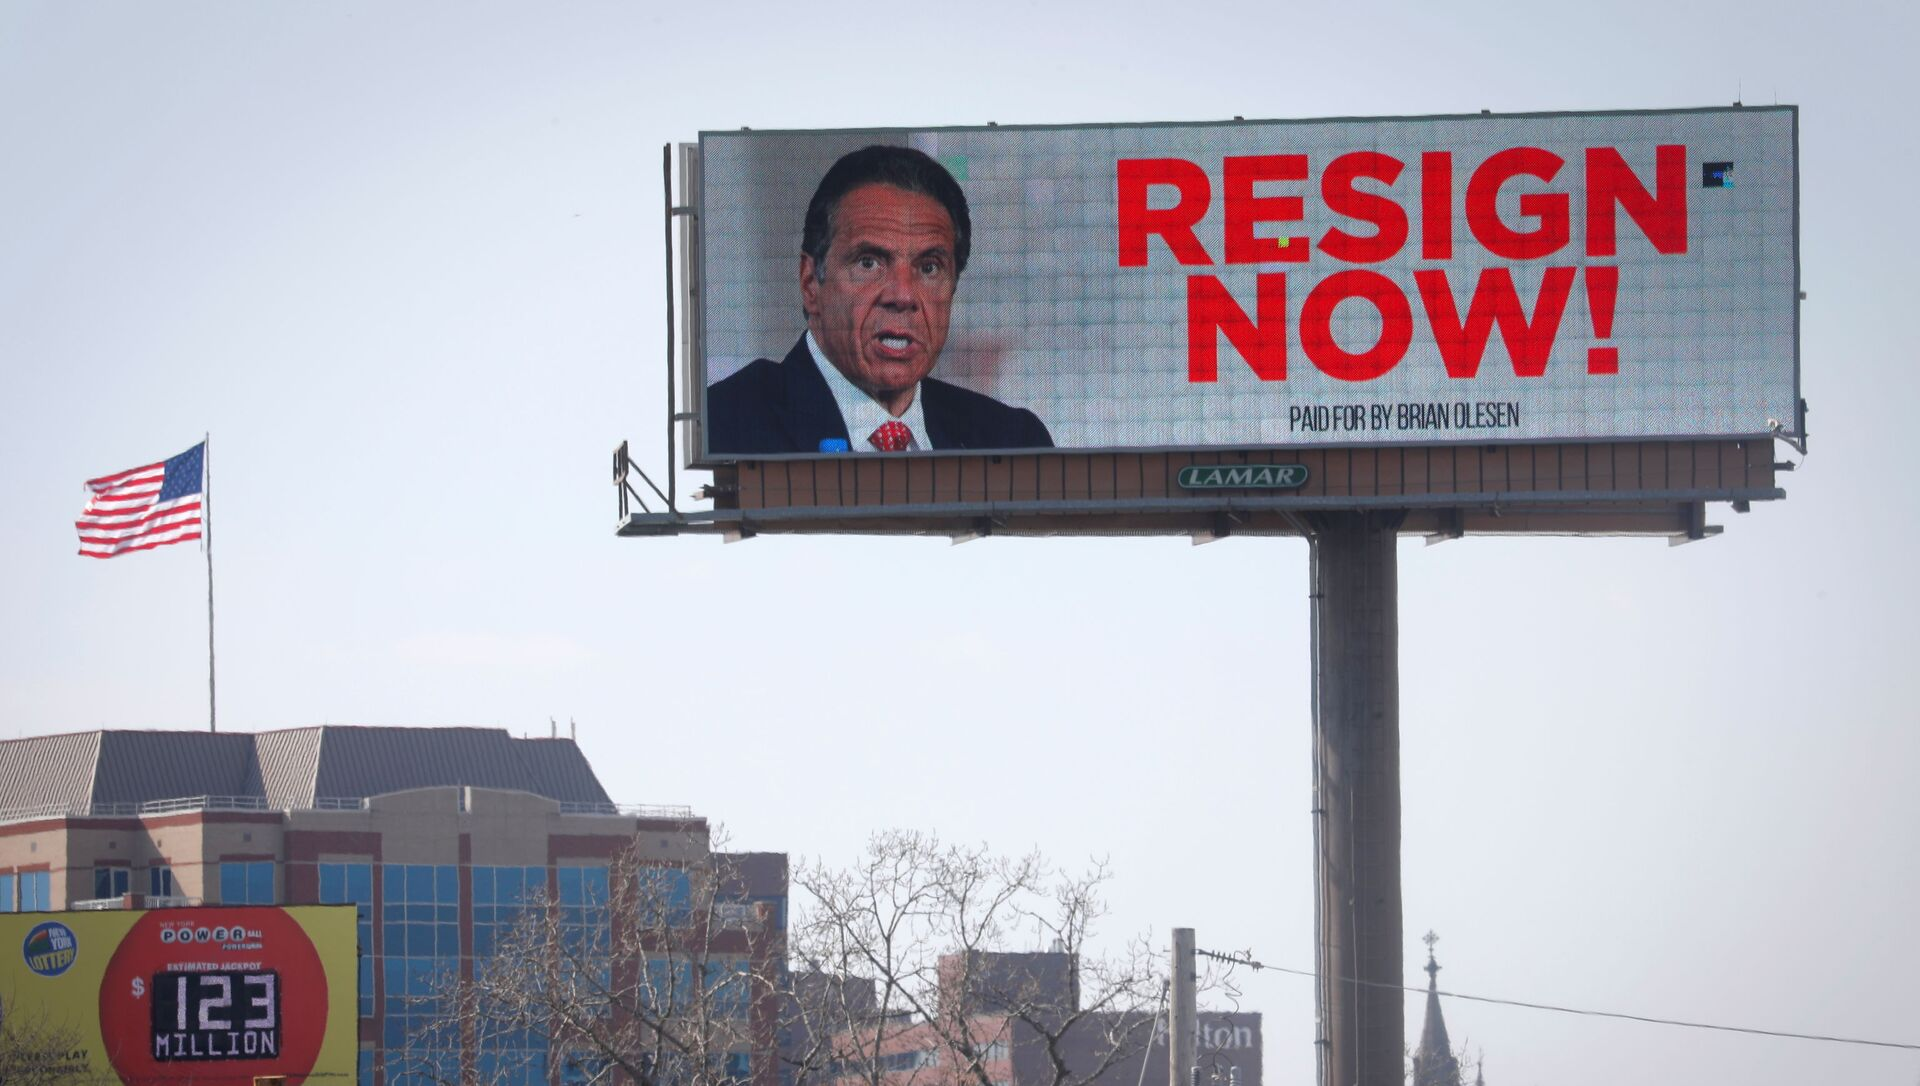 Electronic billboard displays message for New York Governor Cuomo to Resign Now in Albany - Sputnik International, 1920, 05.08.2021